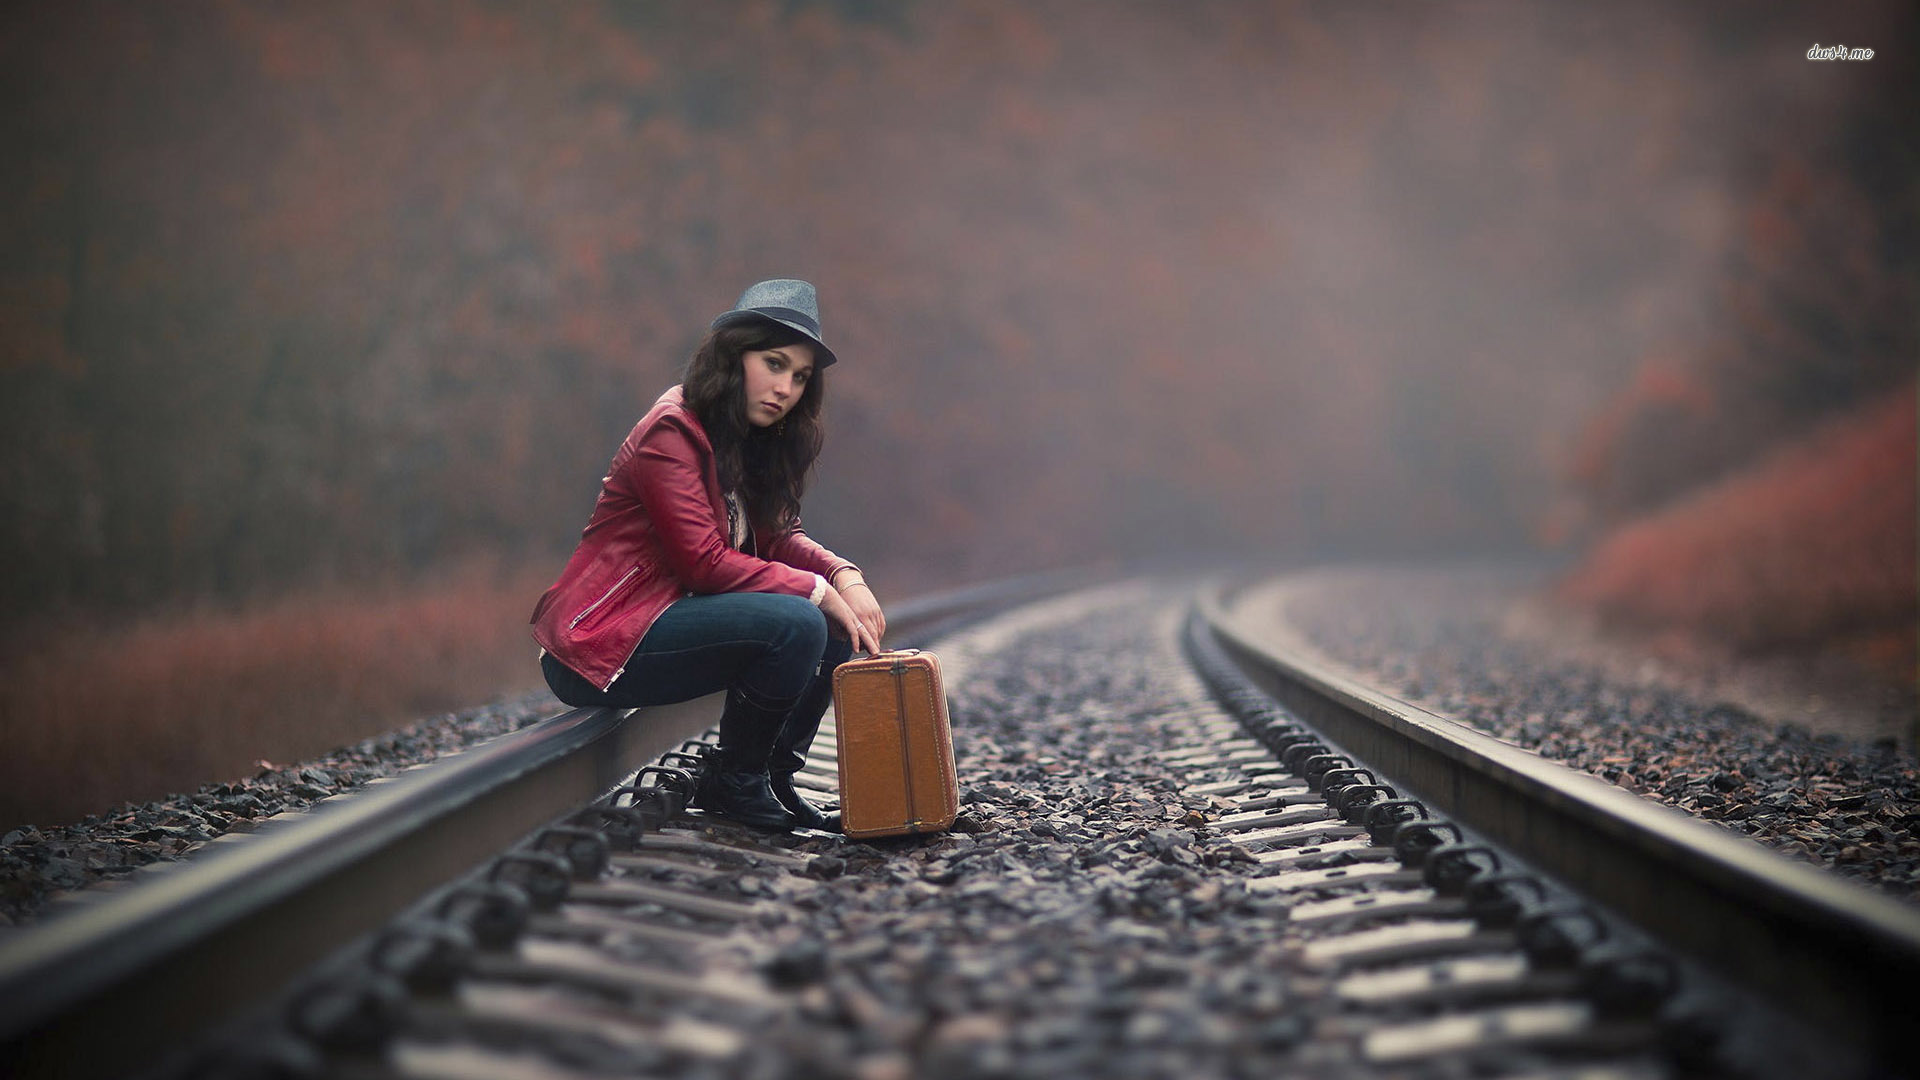 Wallpaper Girl Waiting Love : Railroad Wallpapers, Pictures, Images